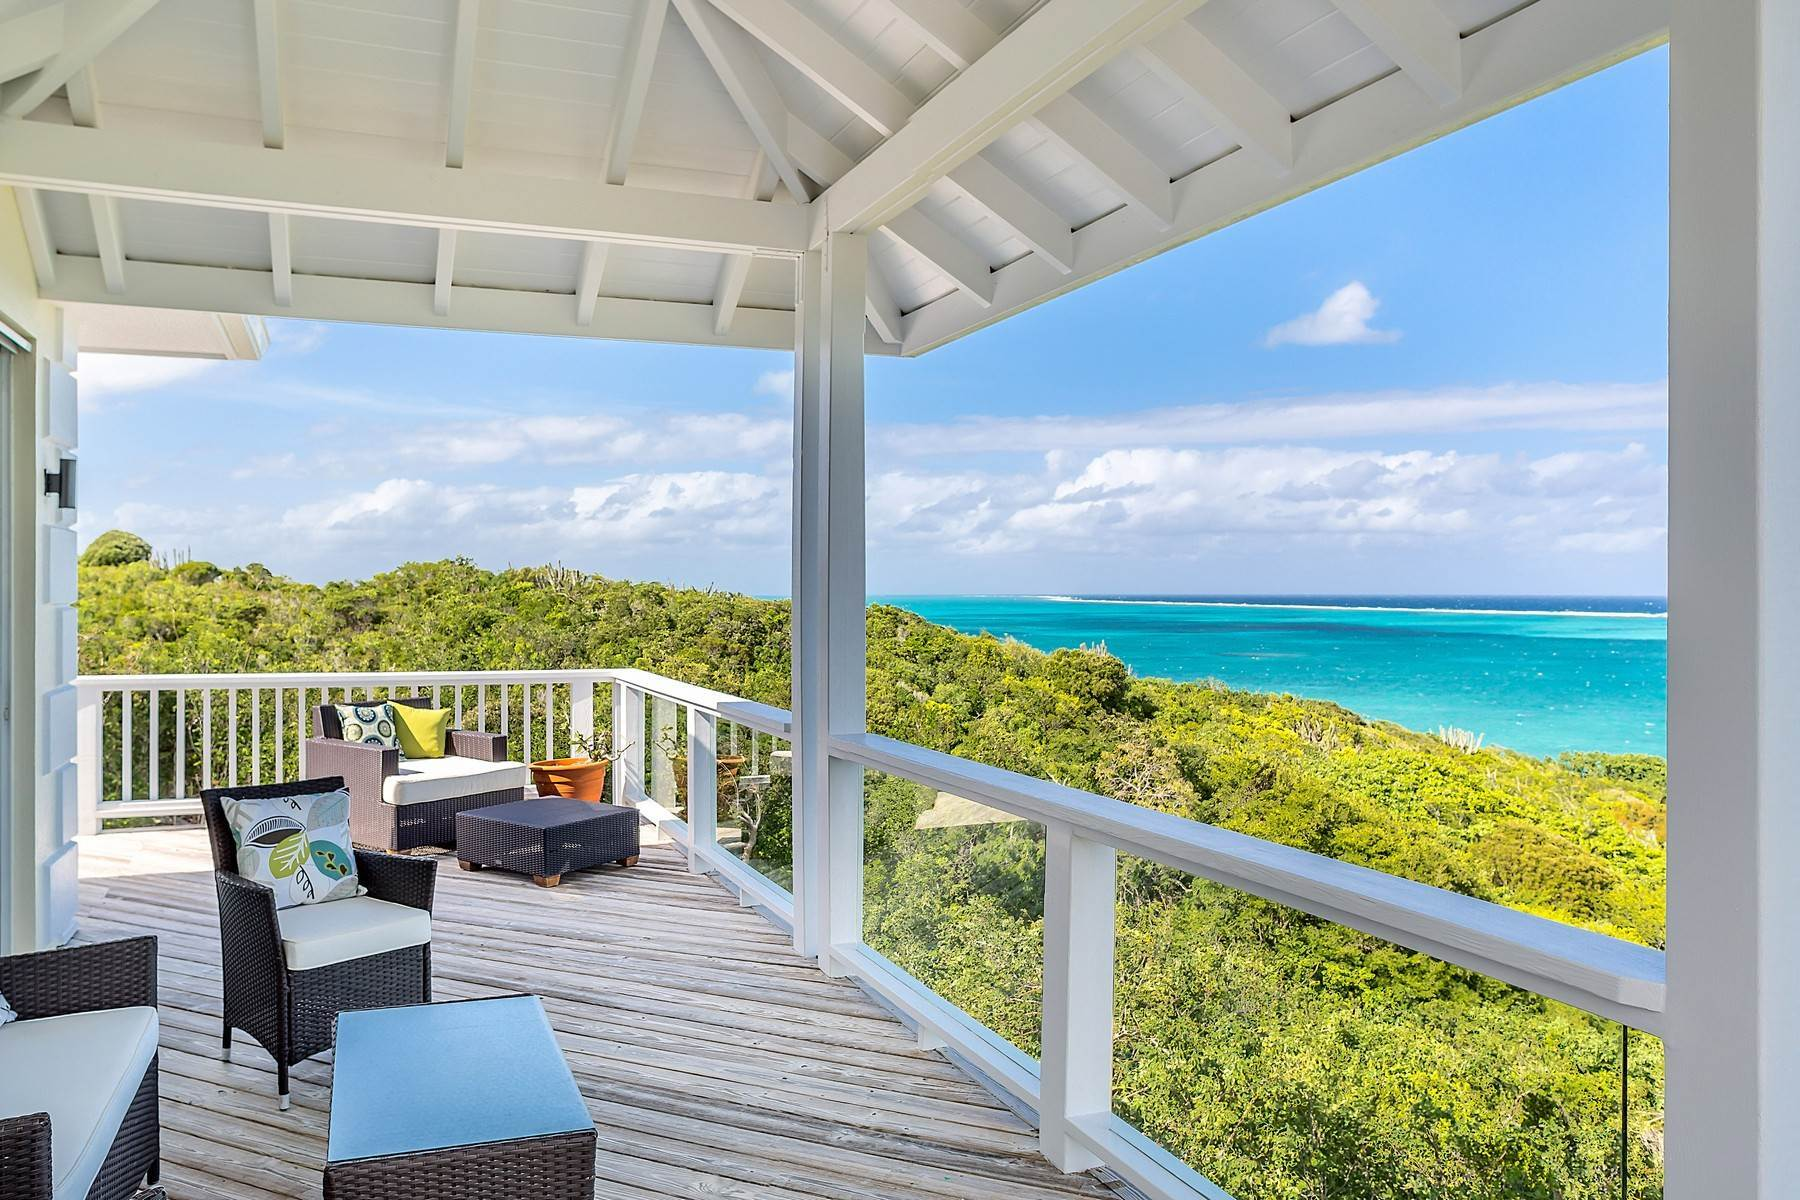 Single Family Homes for Sale at AQUA VISTA Blue Mountain, Providenciales Turks And Caicos Islands